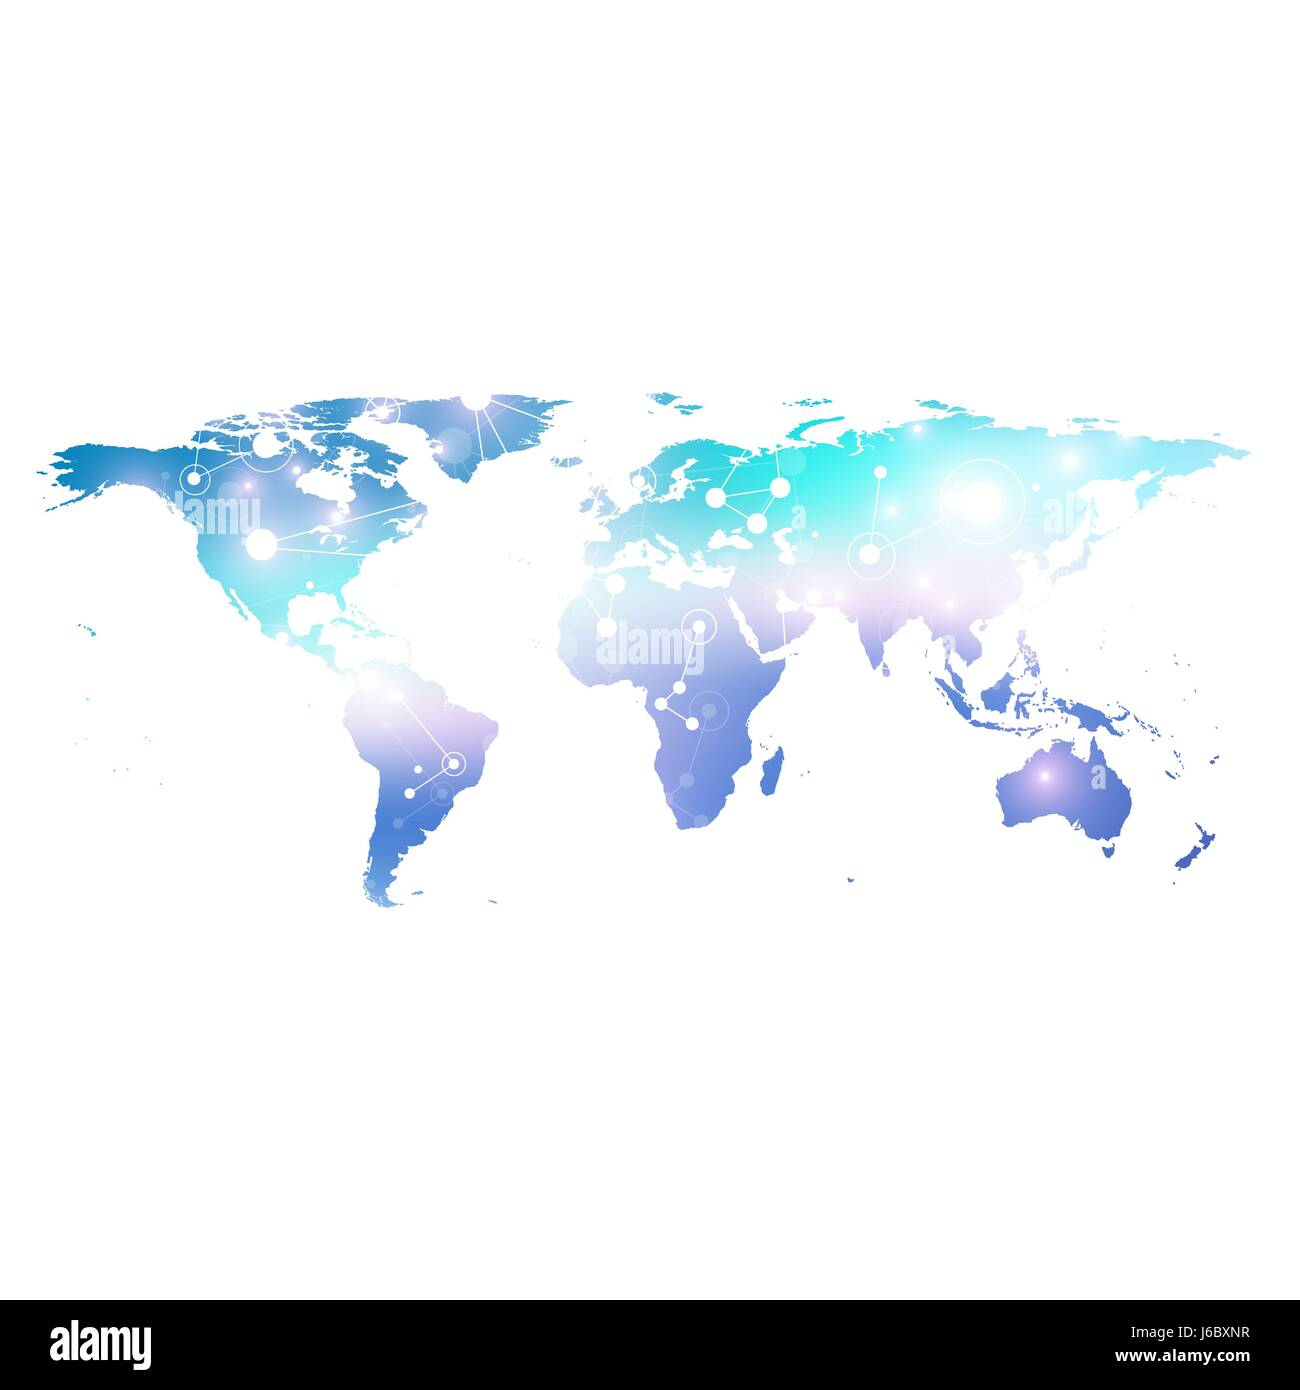 Political world map geometric graphic background communication big political world map geometric graphic background communication big data complex with compounds perspective backdrop digital data visualization gumiabroncs Choice Image